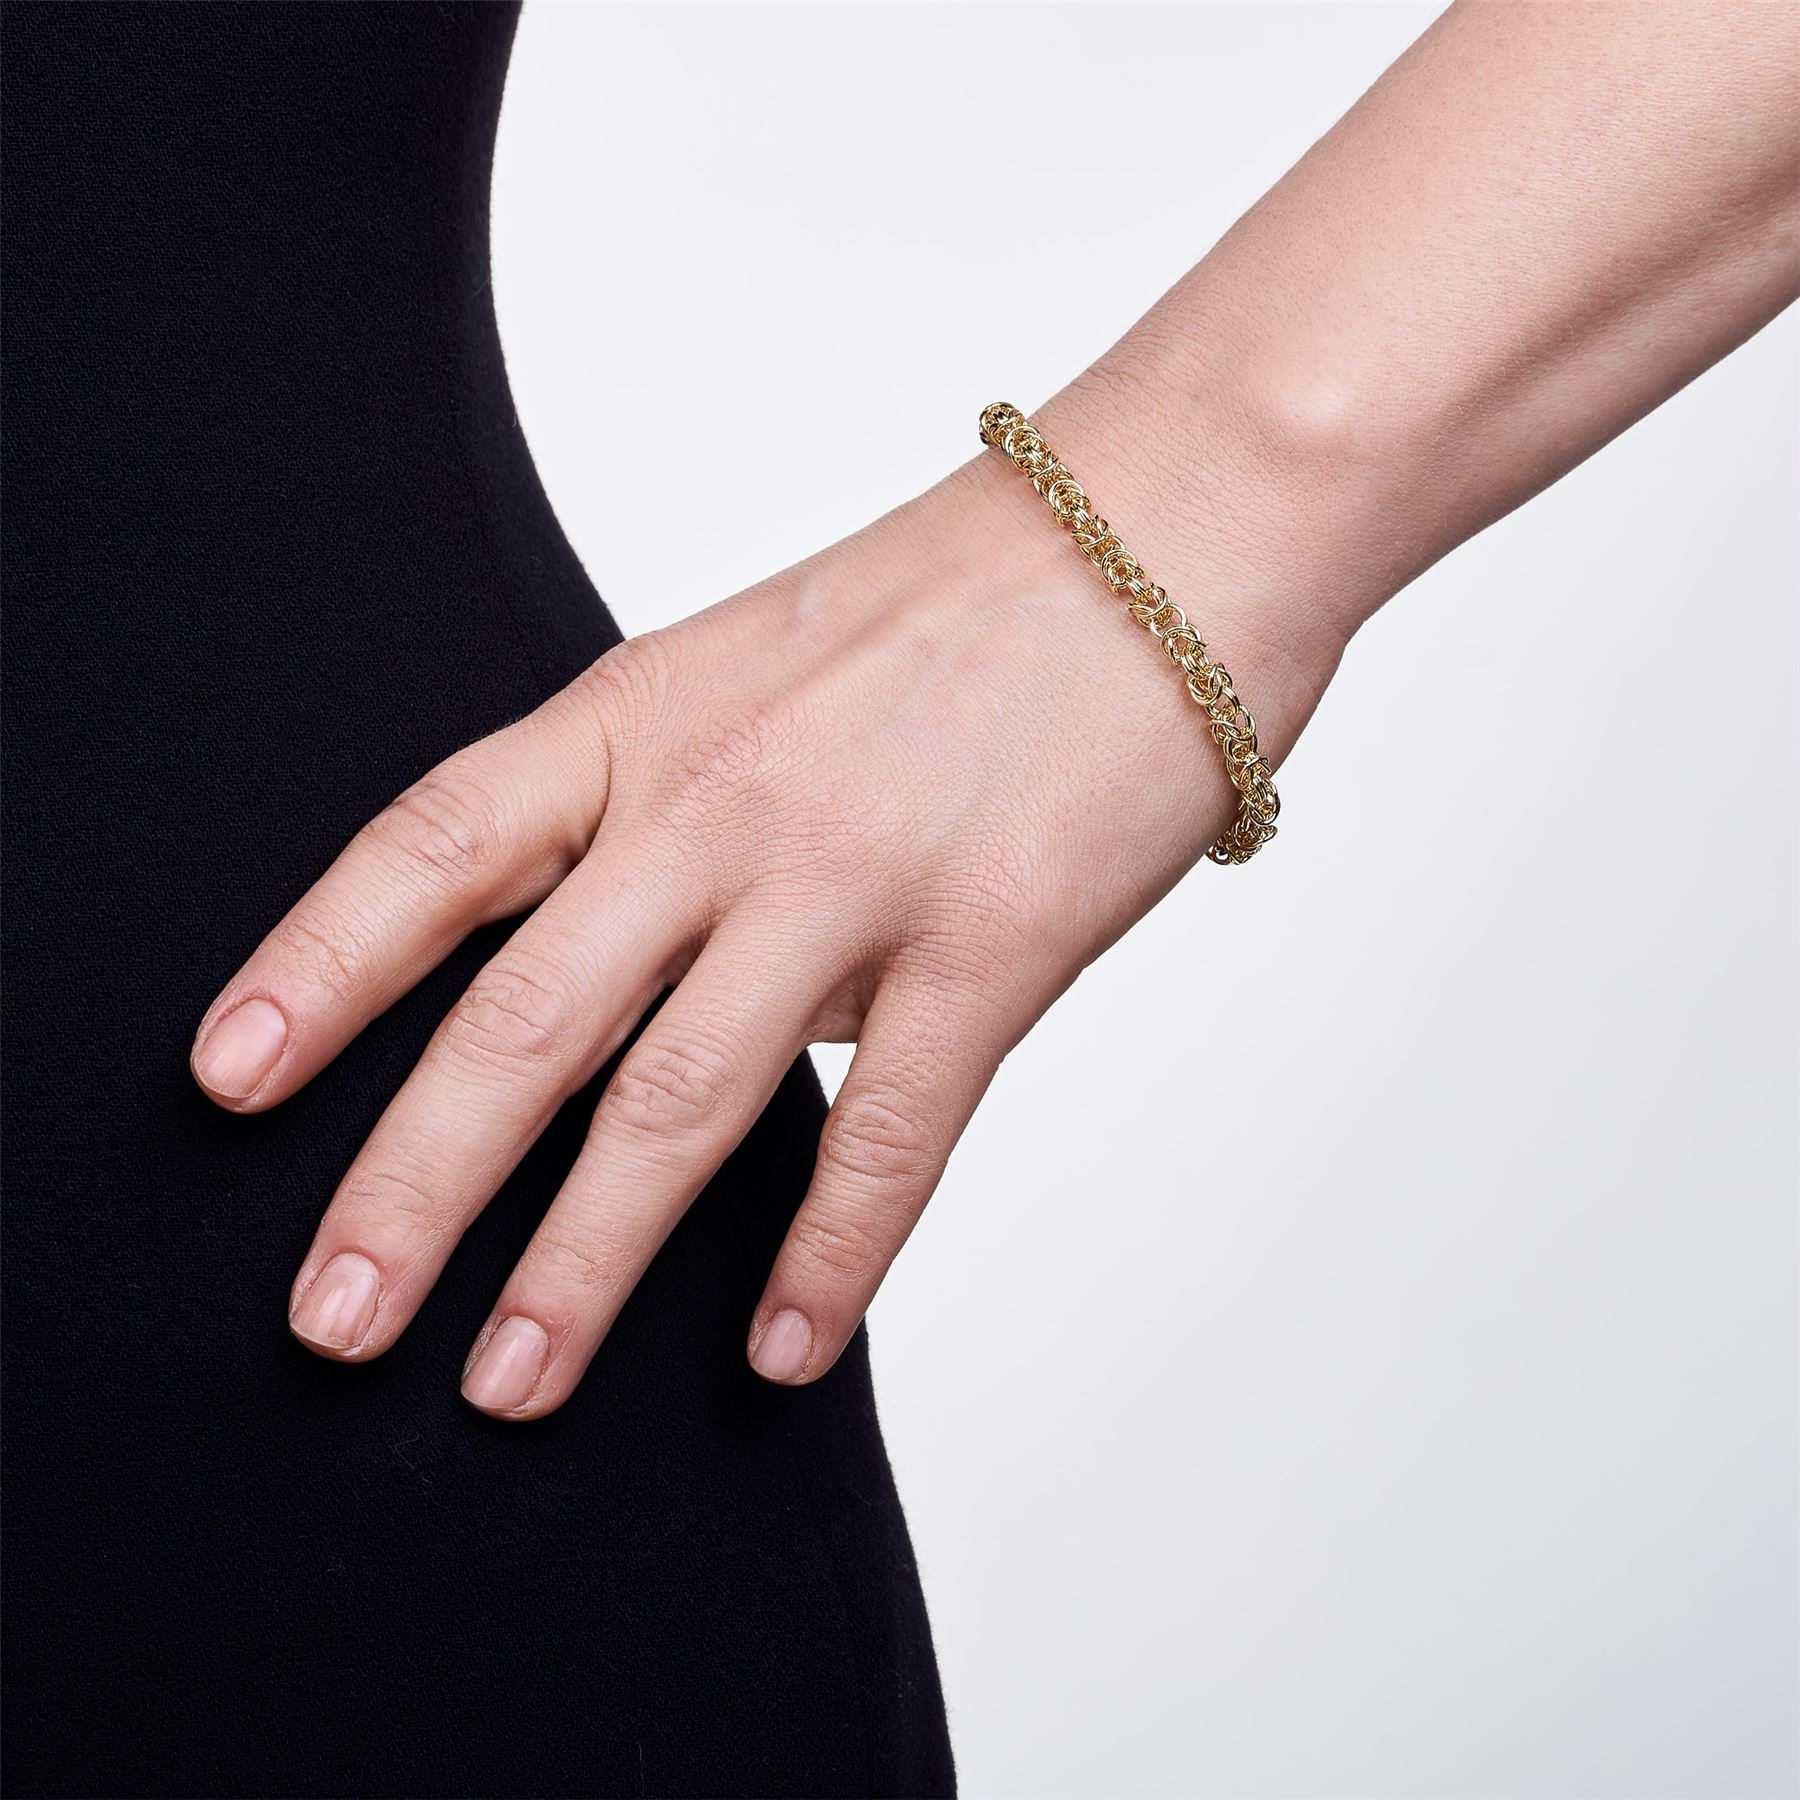 Amberta-Genuine-Real-925-Sterling-Silver-Chain-Bracelet-for-Women-from-Italy miniature 13